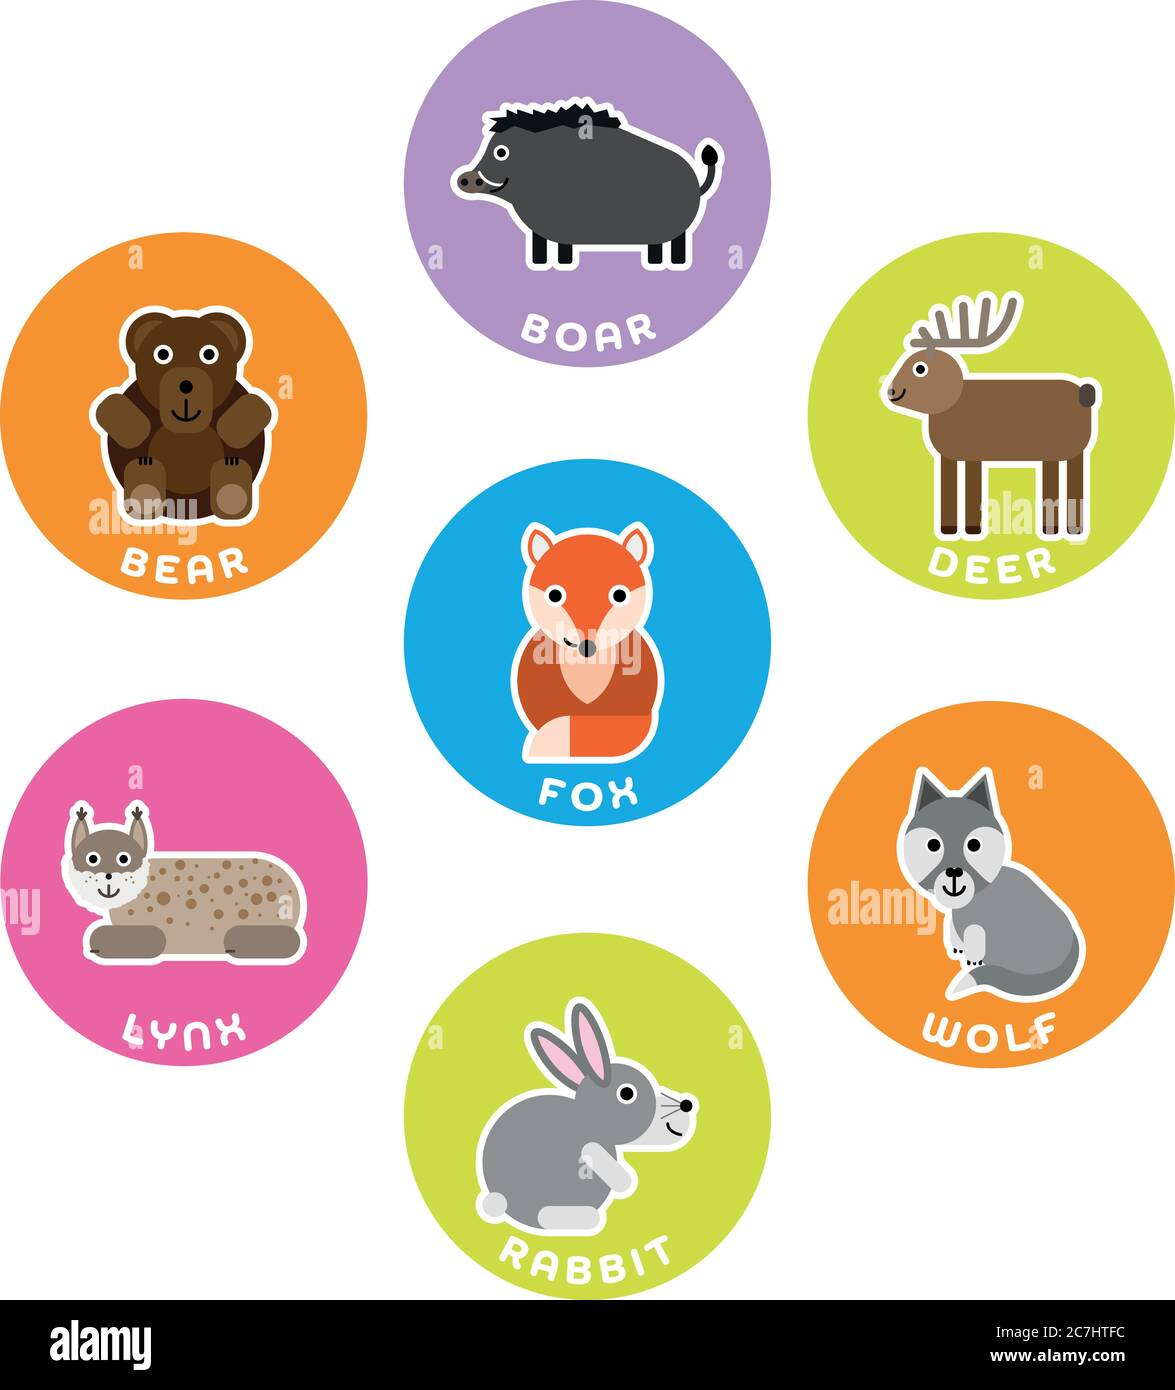 Forest wild animals collection. Set of 7 cartoon characters in the circle with name labels. Vector illustration. Stock Vector